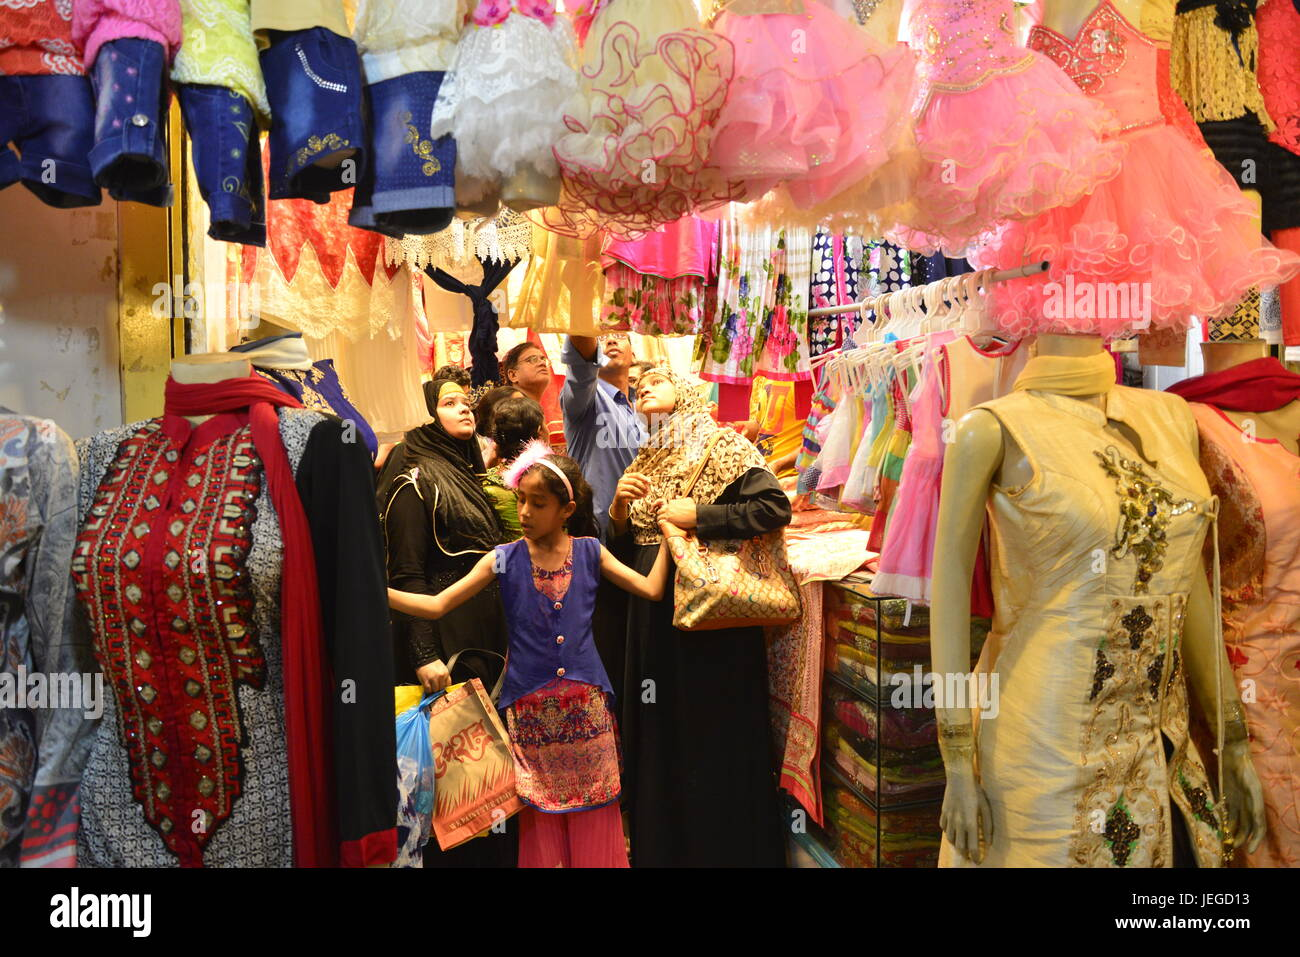 Beautiful Bangladesh Eid Al-Fitr Feast - bangladeshi-muslim-peoples-busy-in-shopping-at-new-market-ahead-of-JEGD13  Collection_389380 .jpg